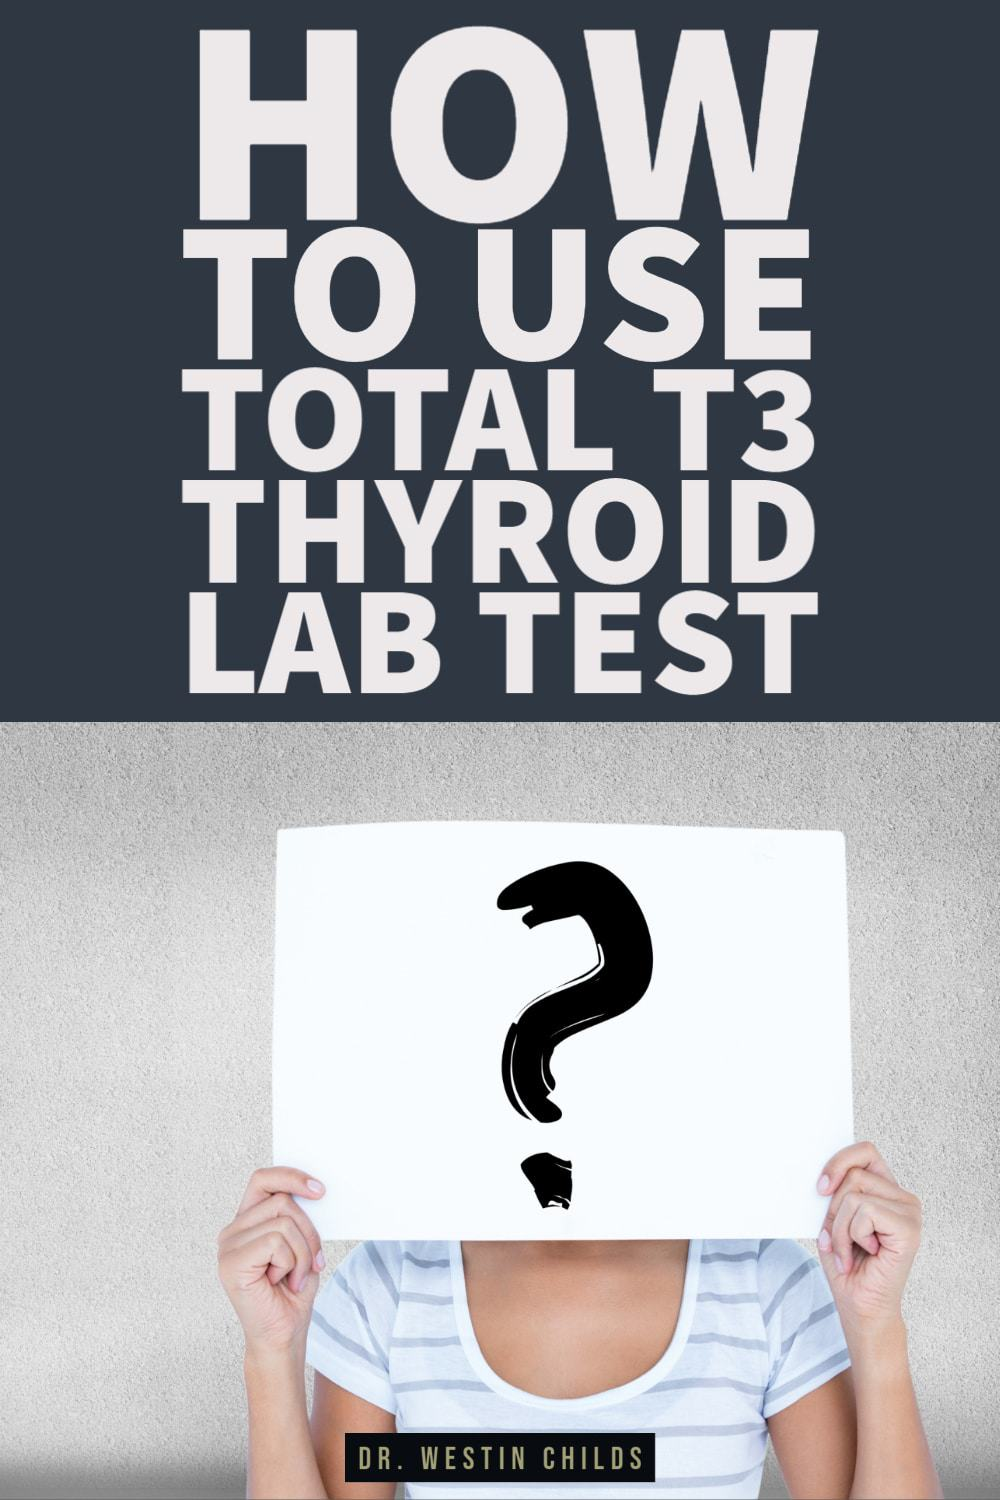 why the total t3 thyroid lab test is so important